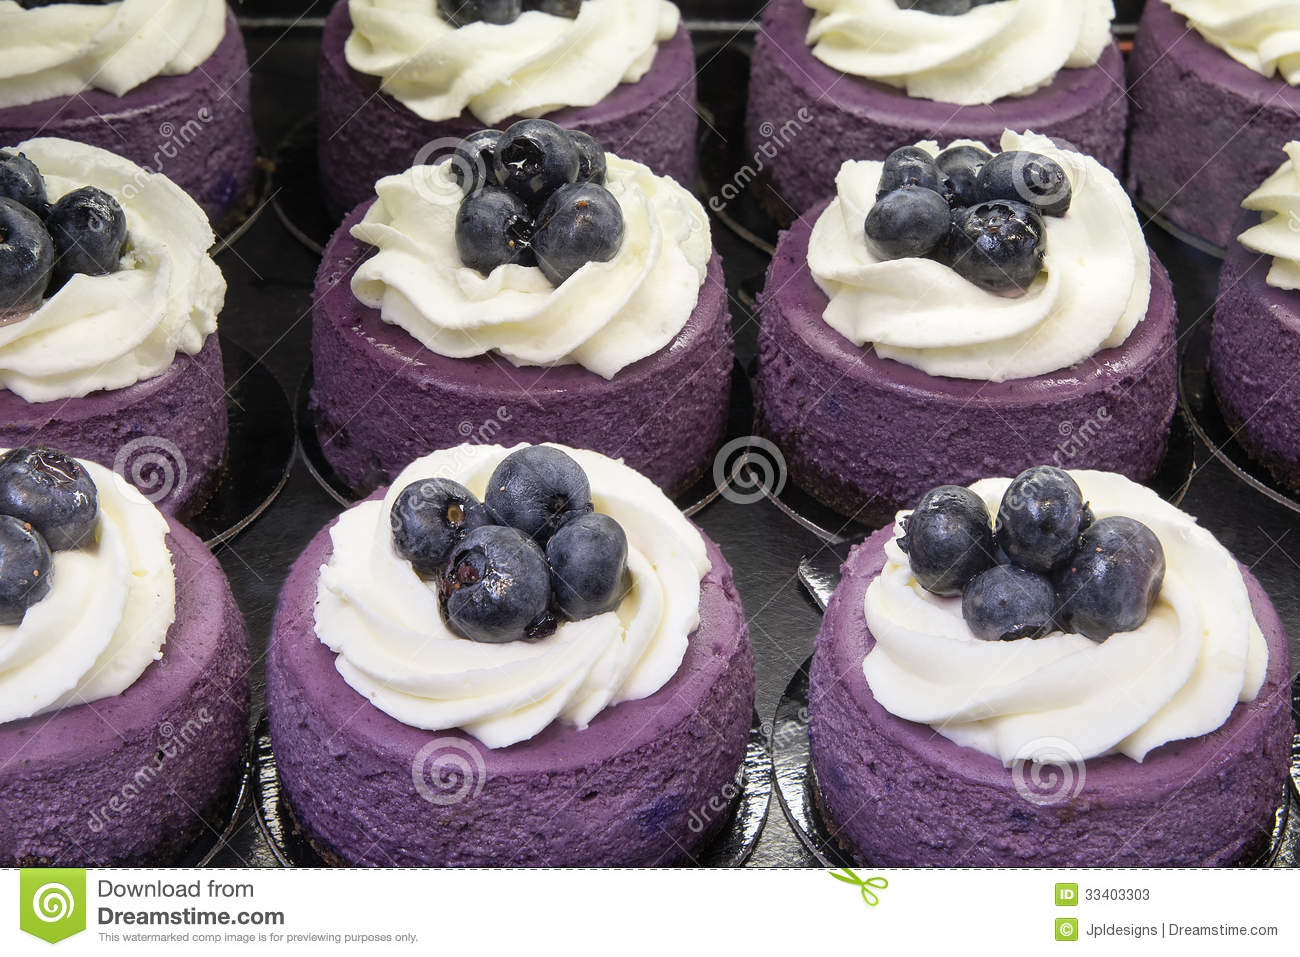 Blueberry Icing Recipe For Cake